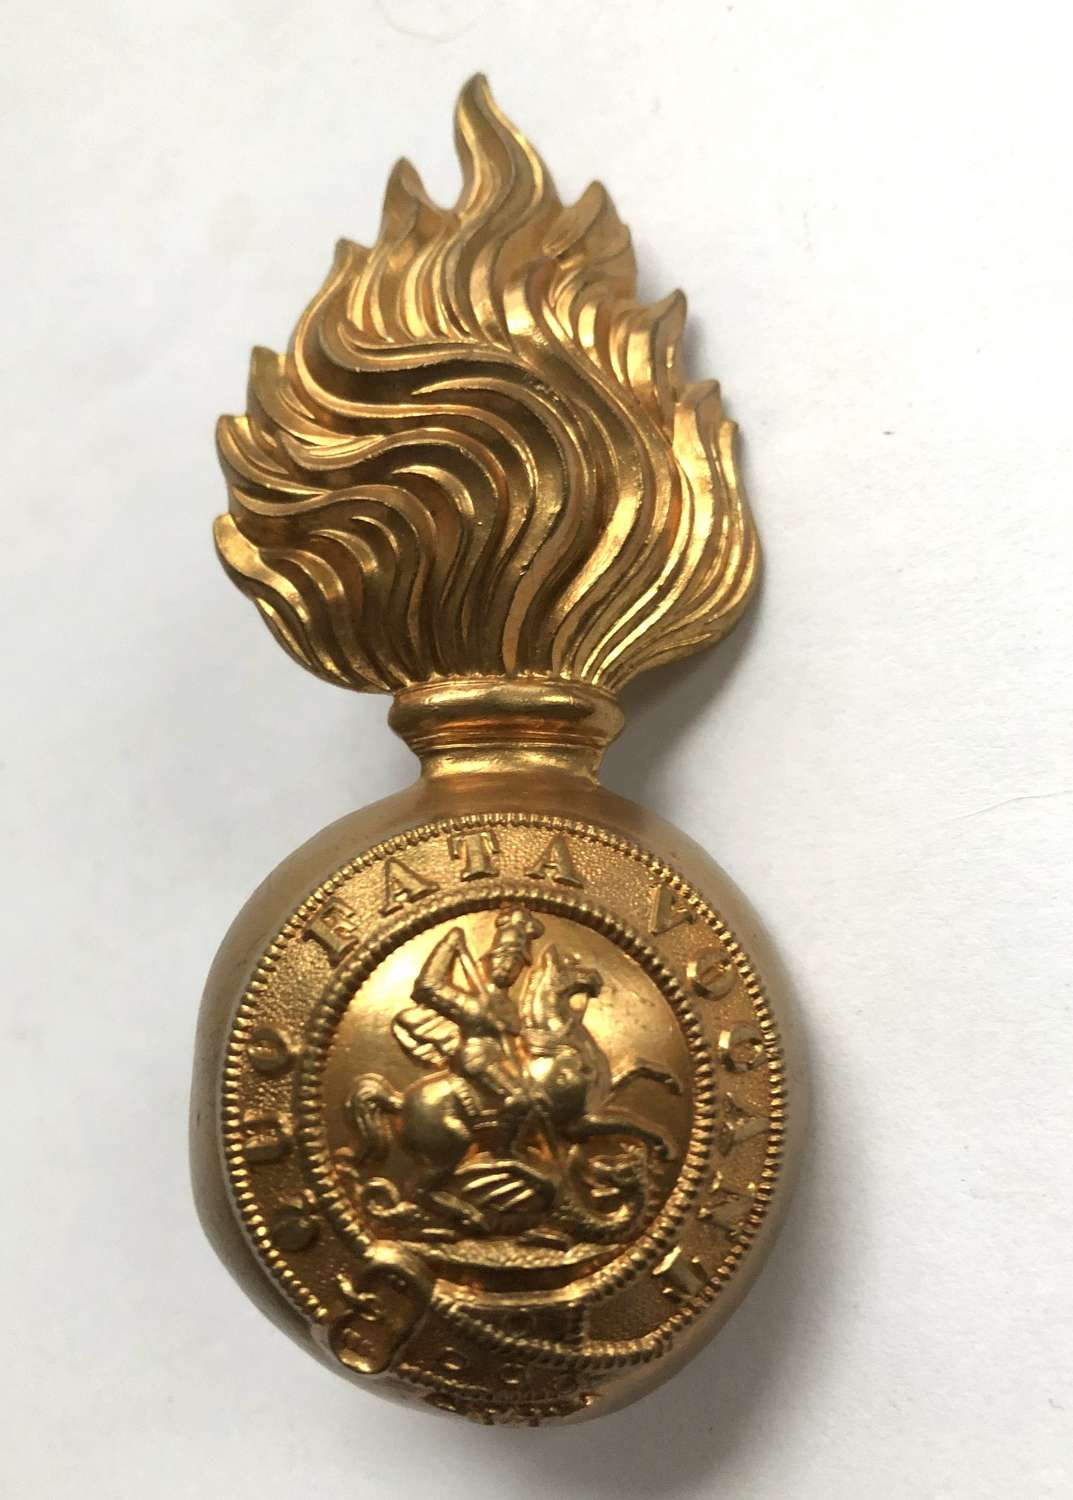 Northumberland Fusiliers post 1881 brass fur cap grenade